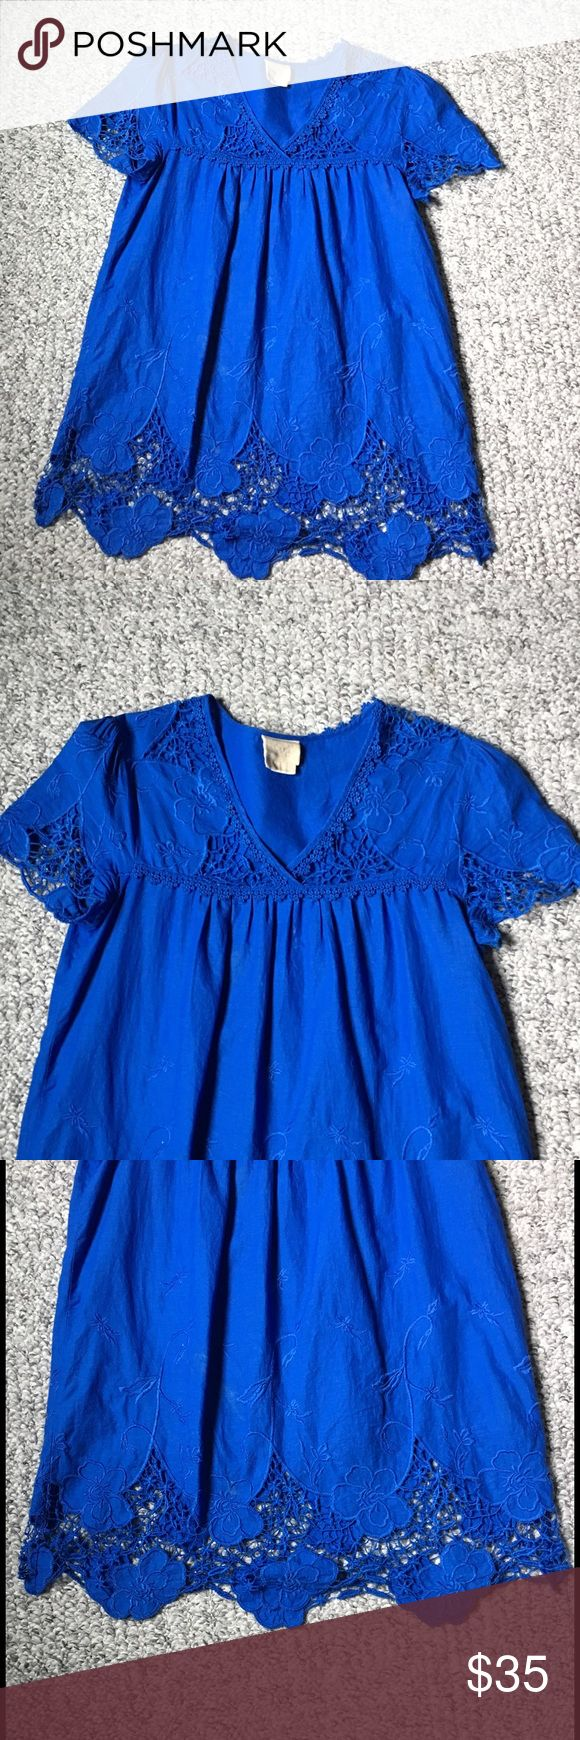 Vanessa Virginia crochet and embroidered top Beautifully detailed top with crochet and embroidered details. Stubby royal blue color. Would look great with white jeans. Good condition. Anthropologie Tops